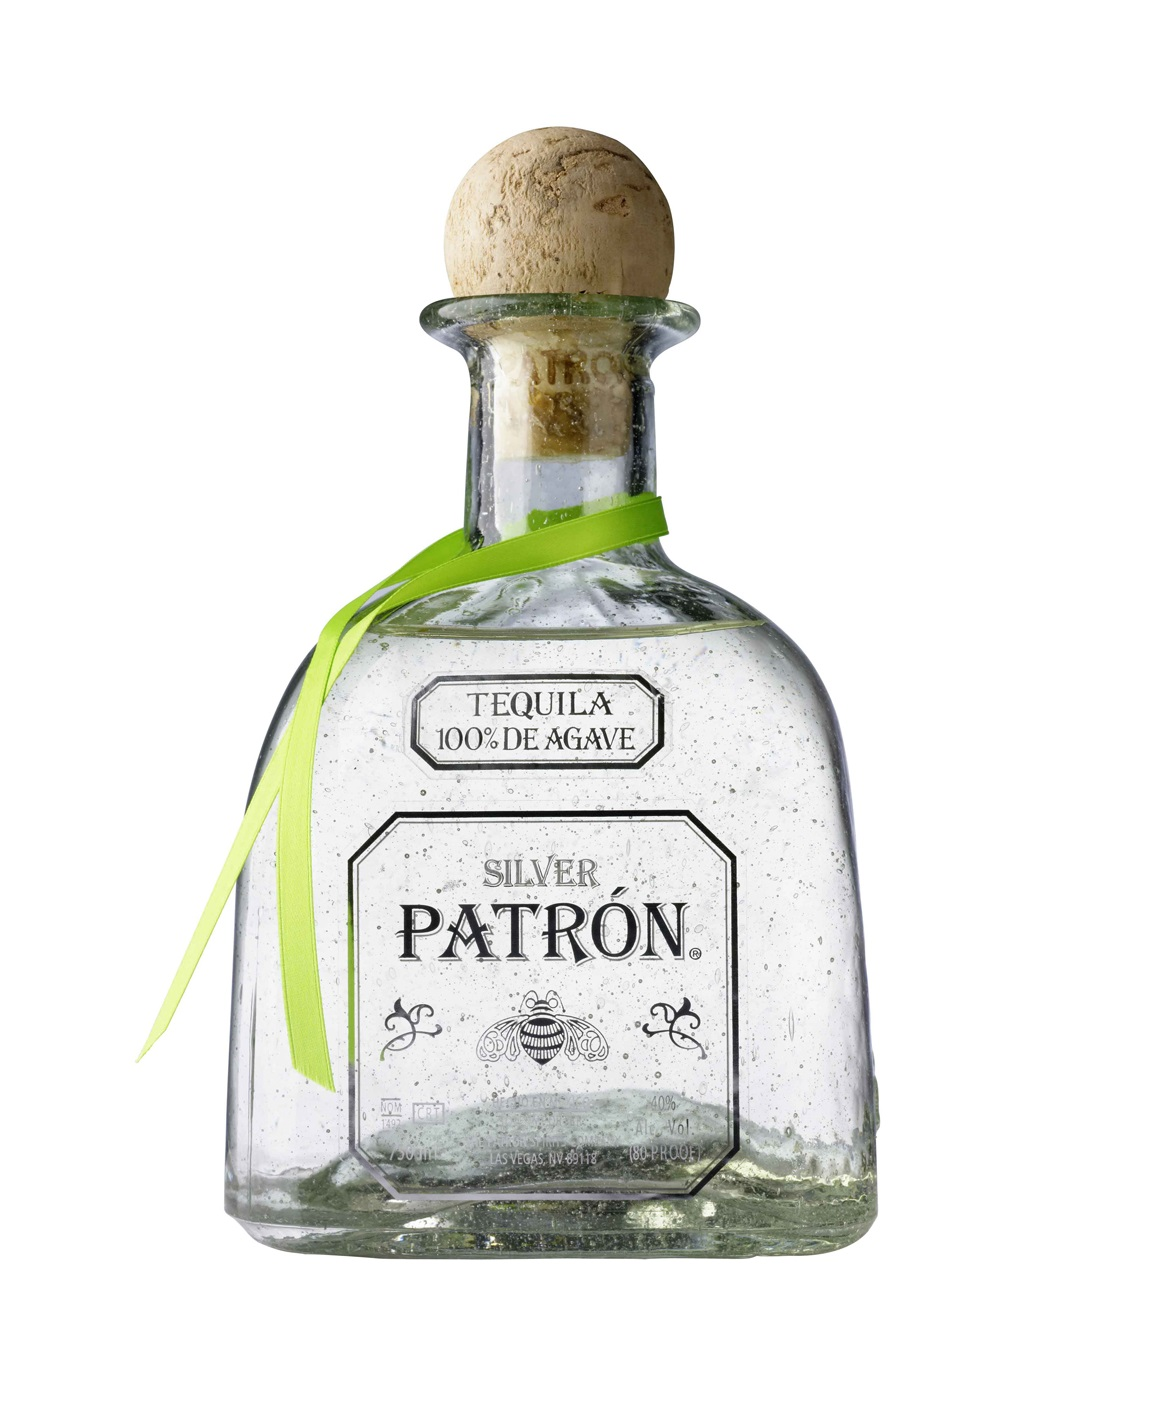 PATRON Silver 40% | Tequila